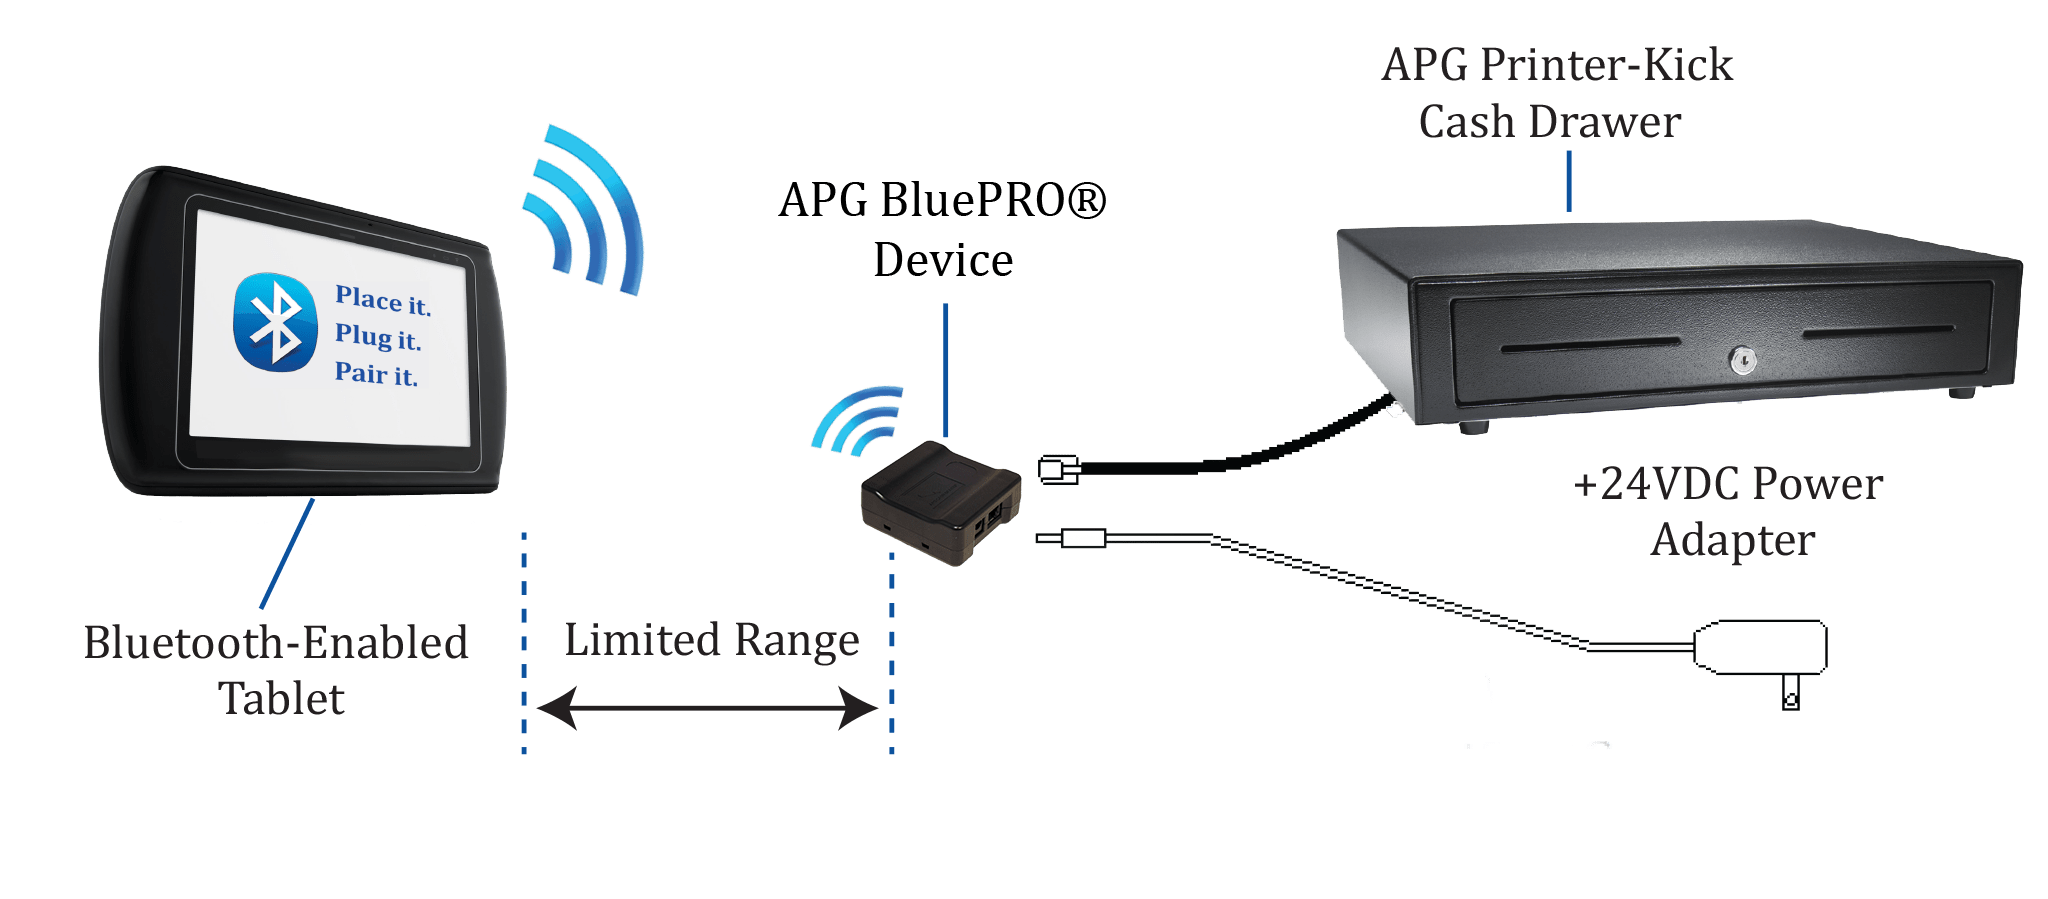 bluetooth application stack diagram fender tbx wiring apg cash drawer releases bluepro device